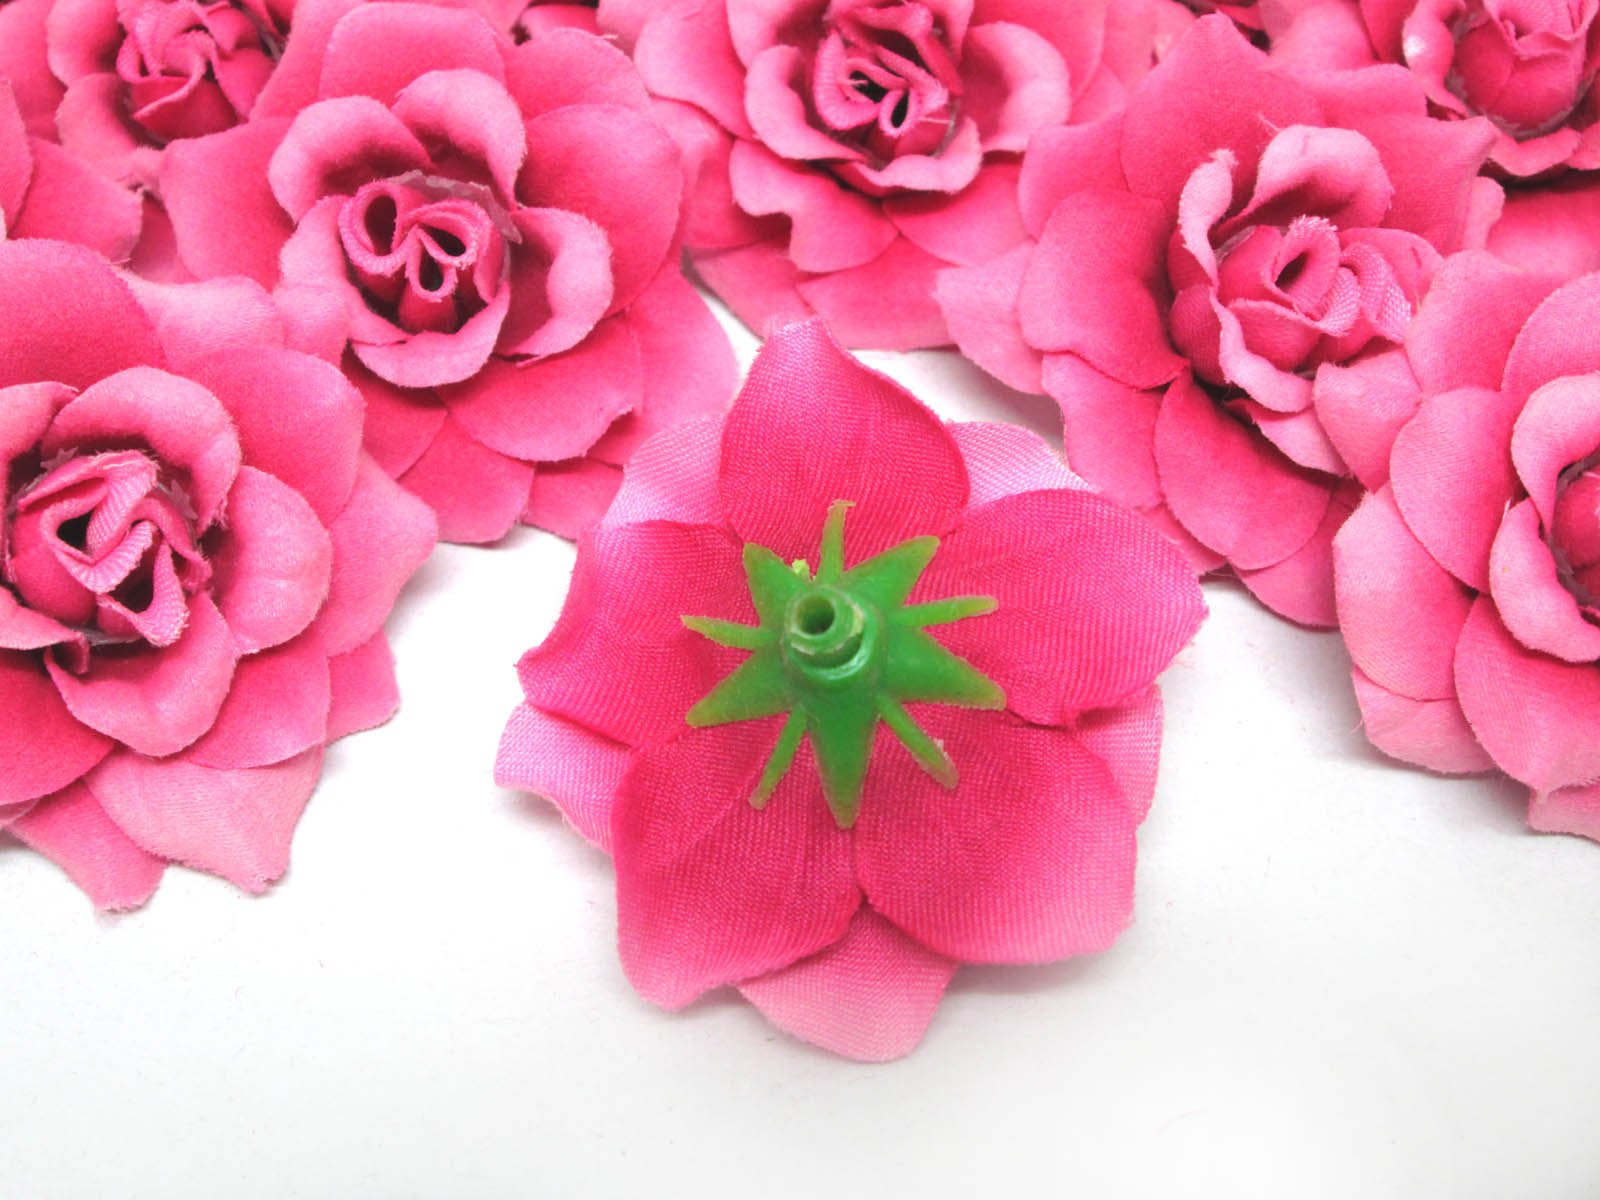 100-Silk-Fuchsia-Roses-Flower-Head-175-Artificial-Flowers-Heads-Fabric-Floral-Supplies-Wholesale-Lot-for-Wedding-Flowers-Accessories-Make-Bridal-Hair-Clips-Headbands-Dress